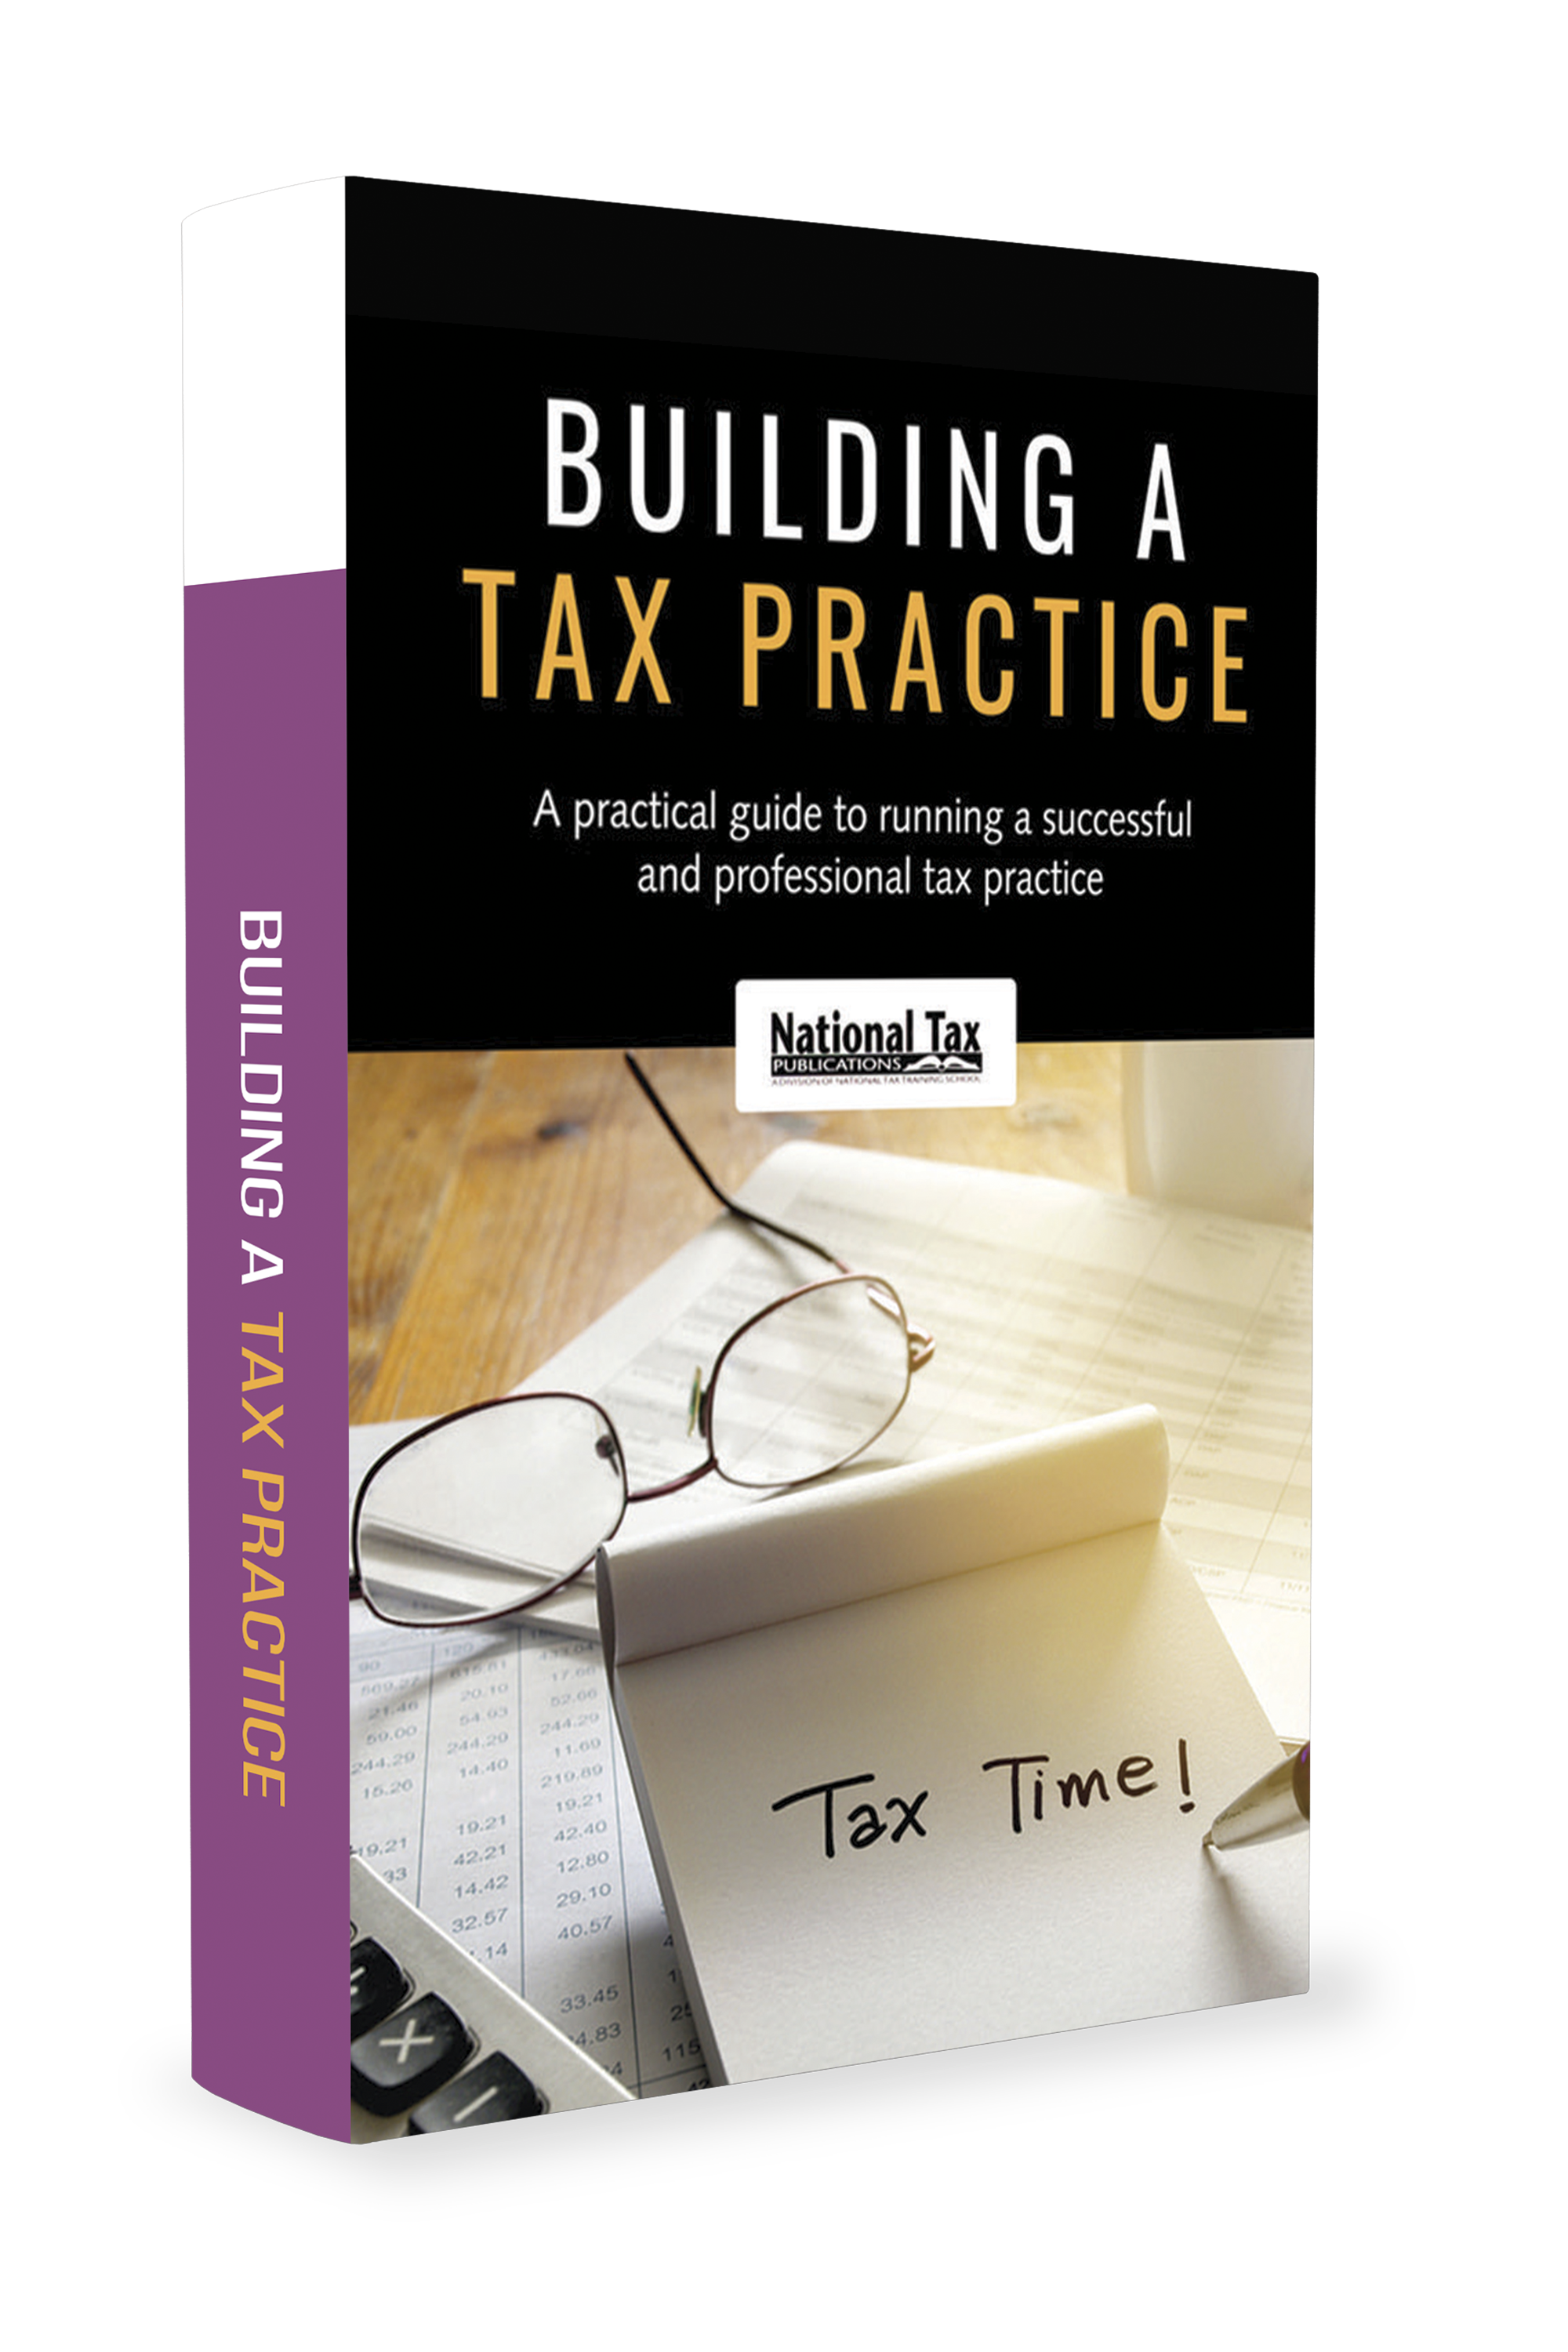 Building a Tax Practice (2017) - #3725